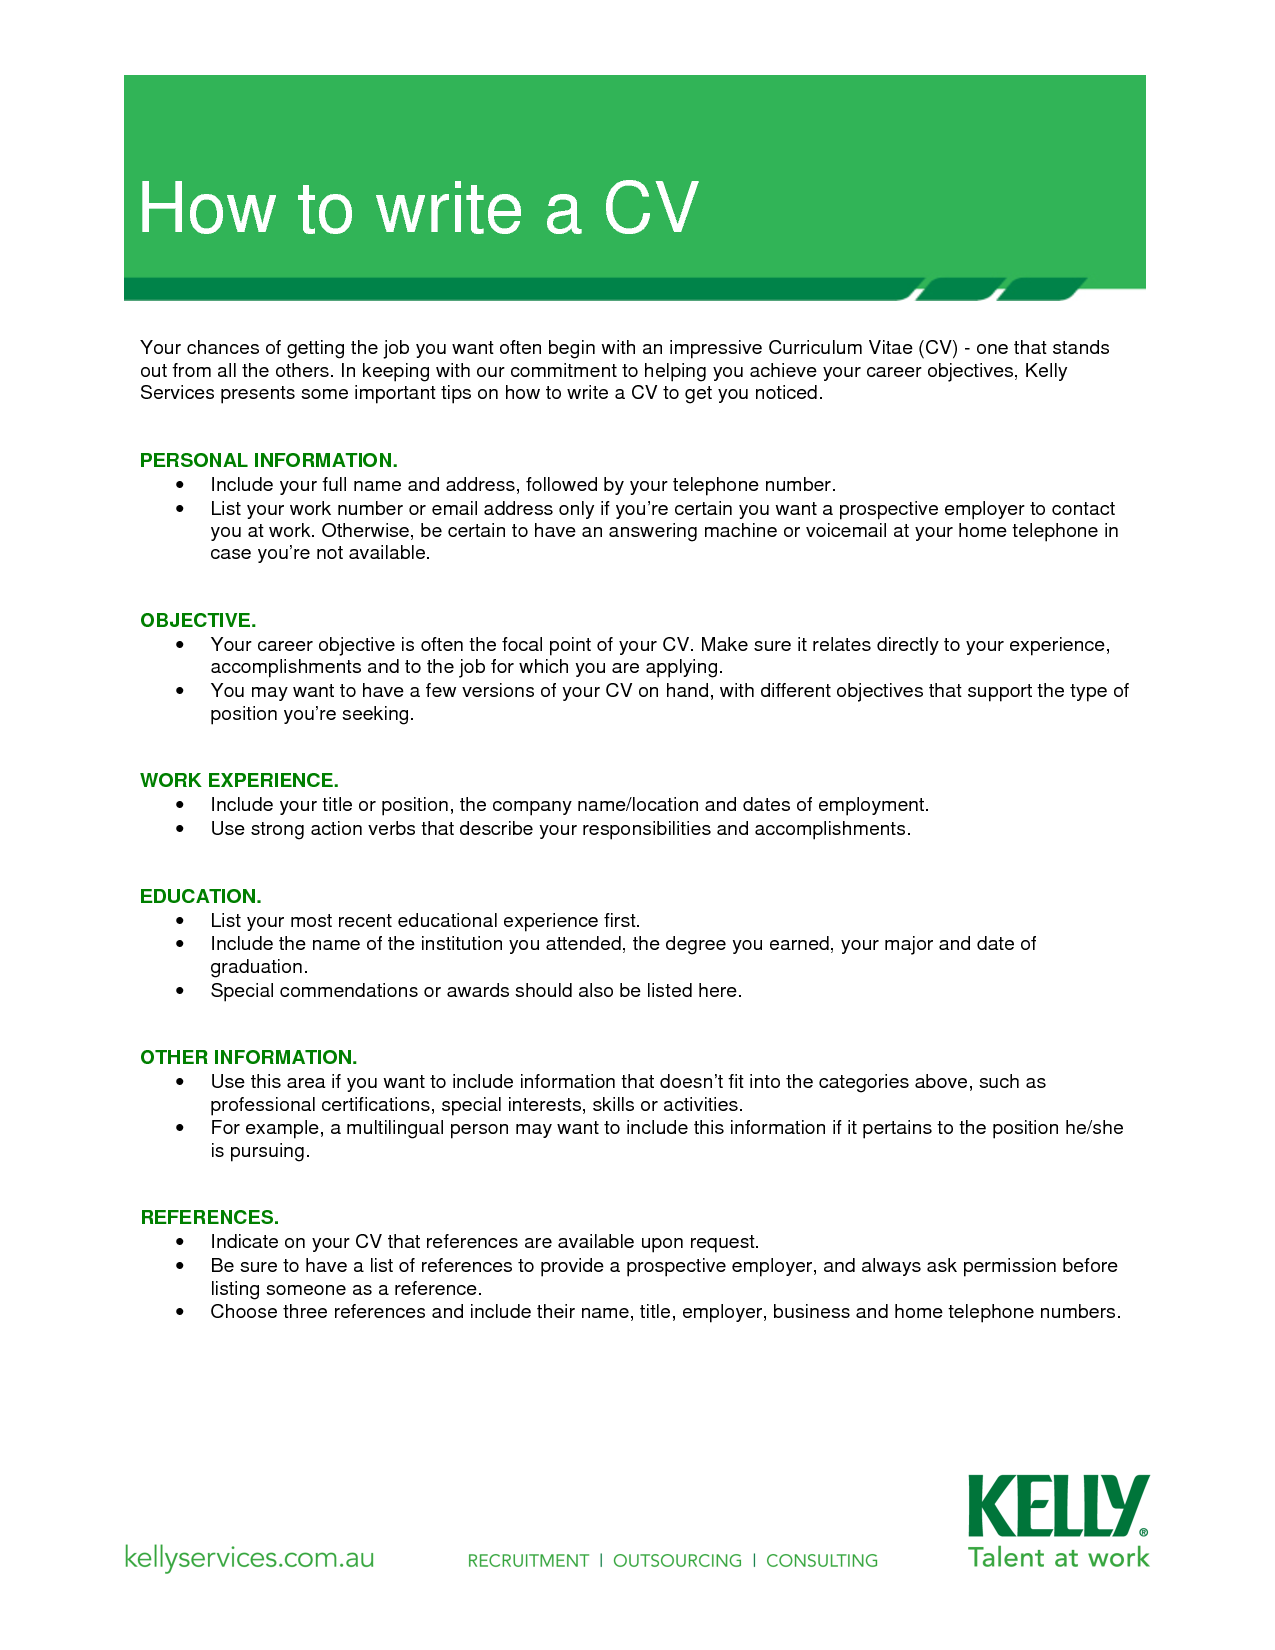 how to write a cv fotolip com rich image and wallpaperhow to write a cv